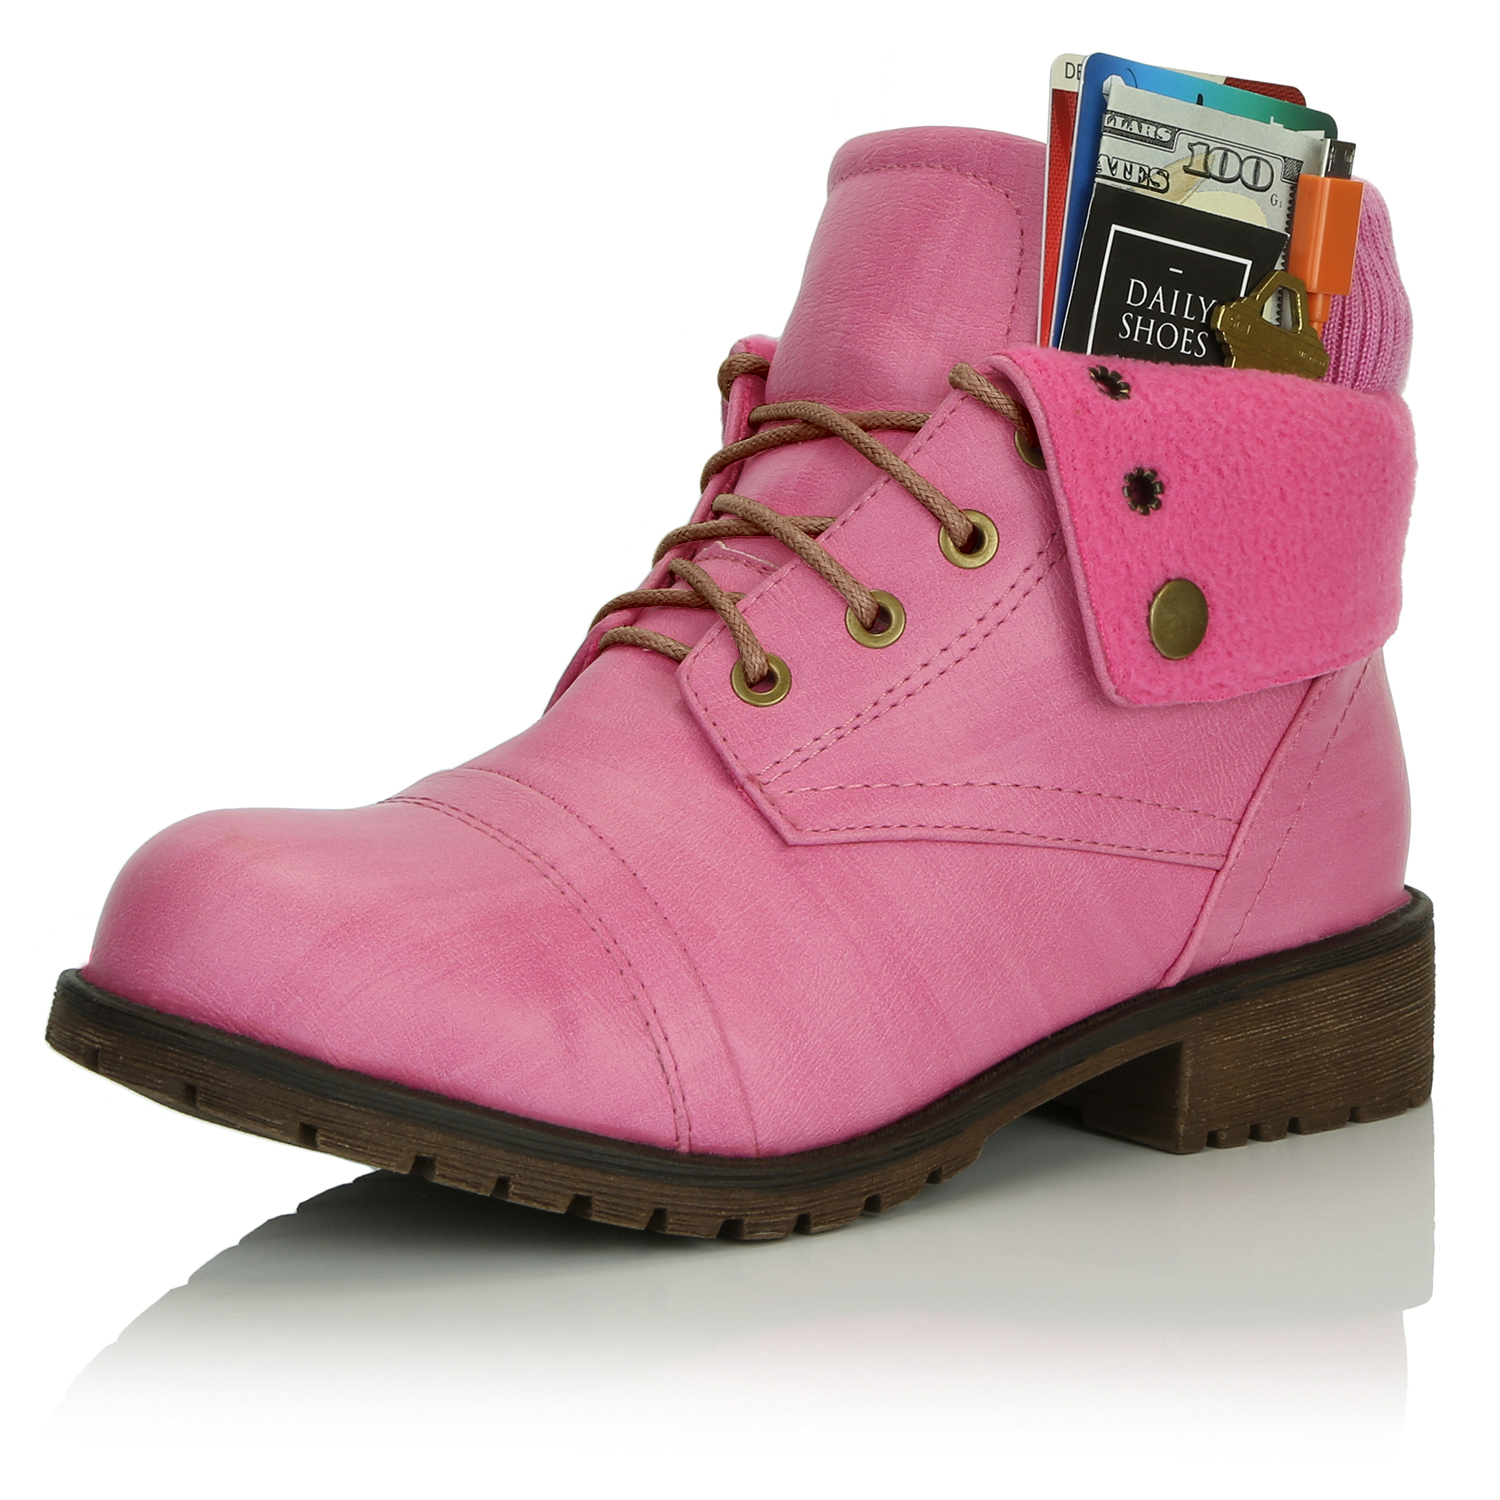 DailyShoes Boots Ankle Flat Ankle Pocket Boot CSLRound-3mm-4